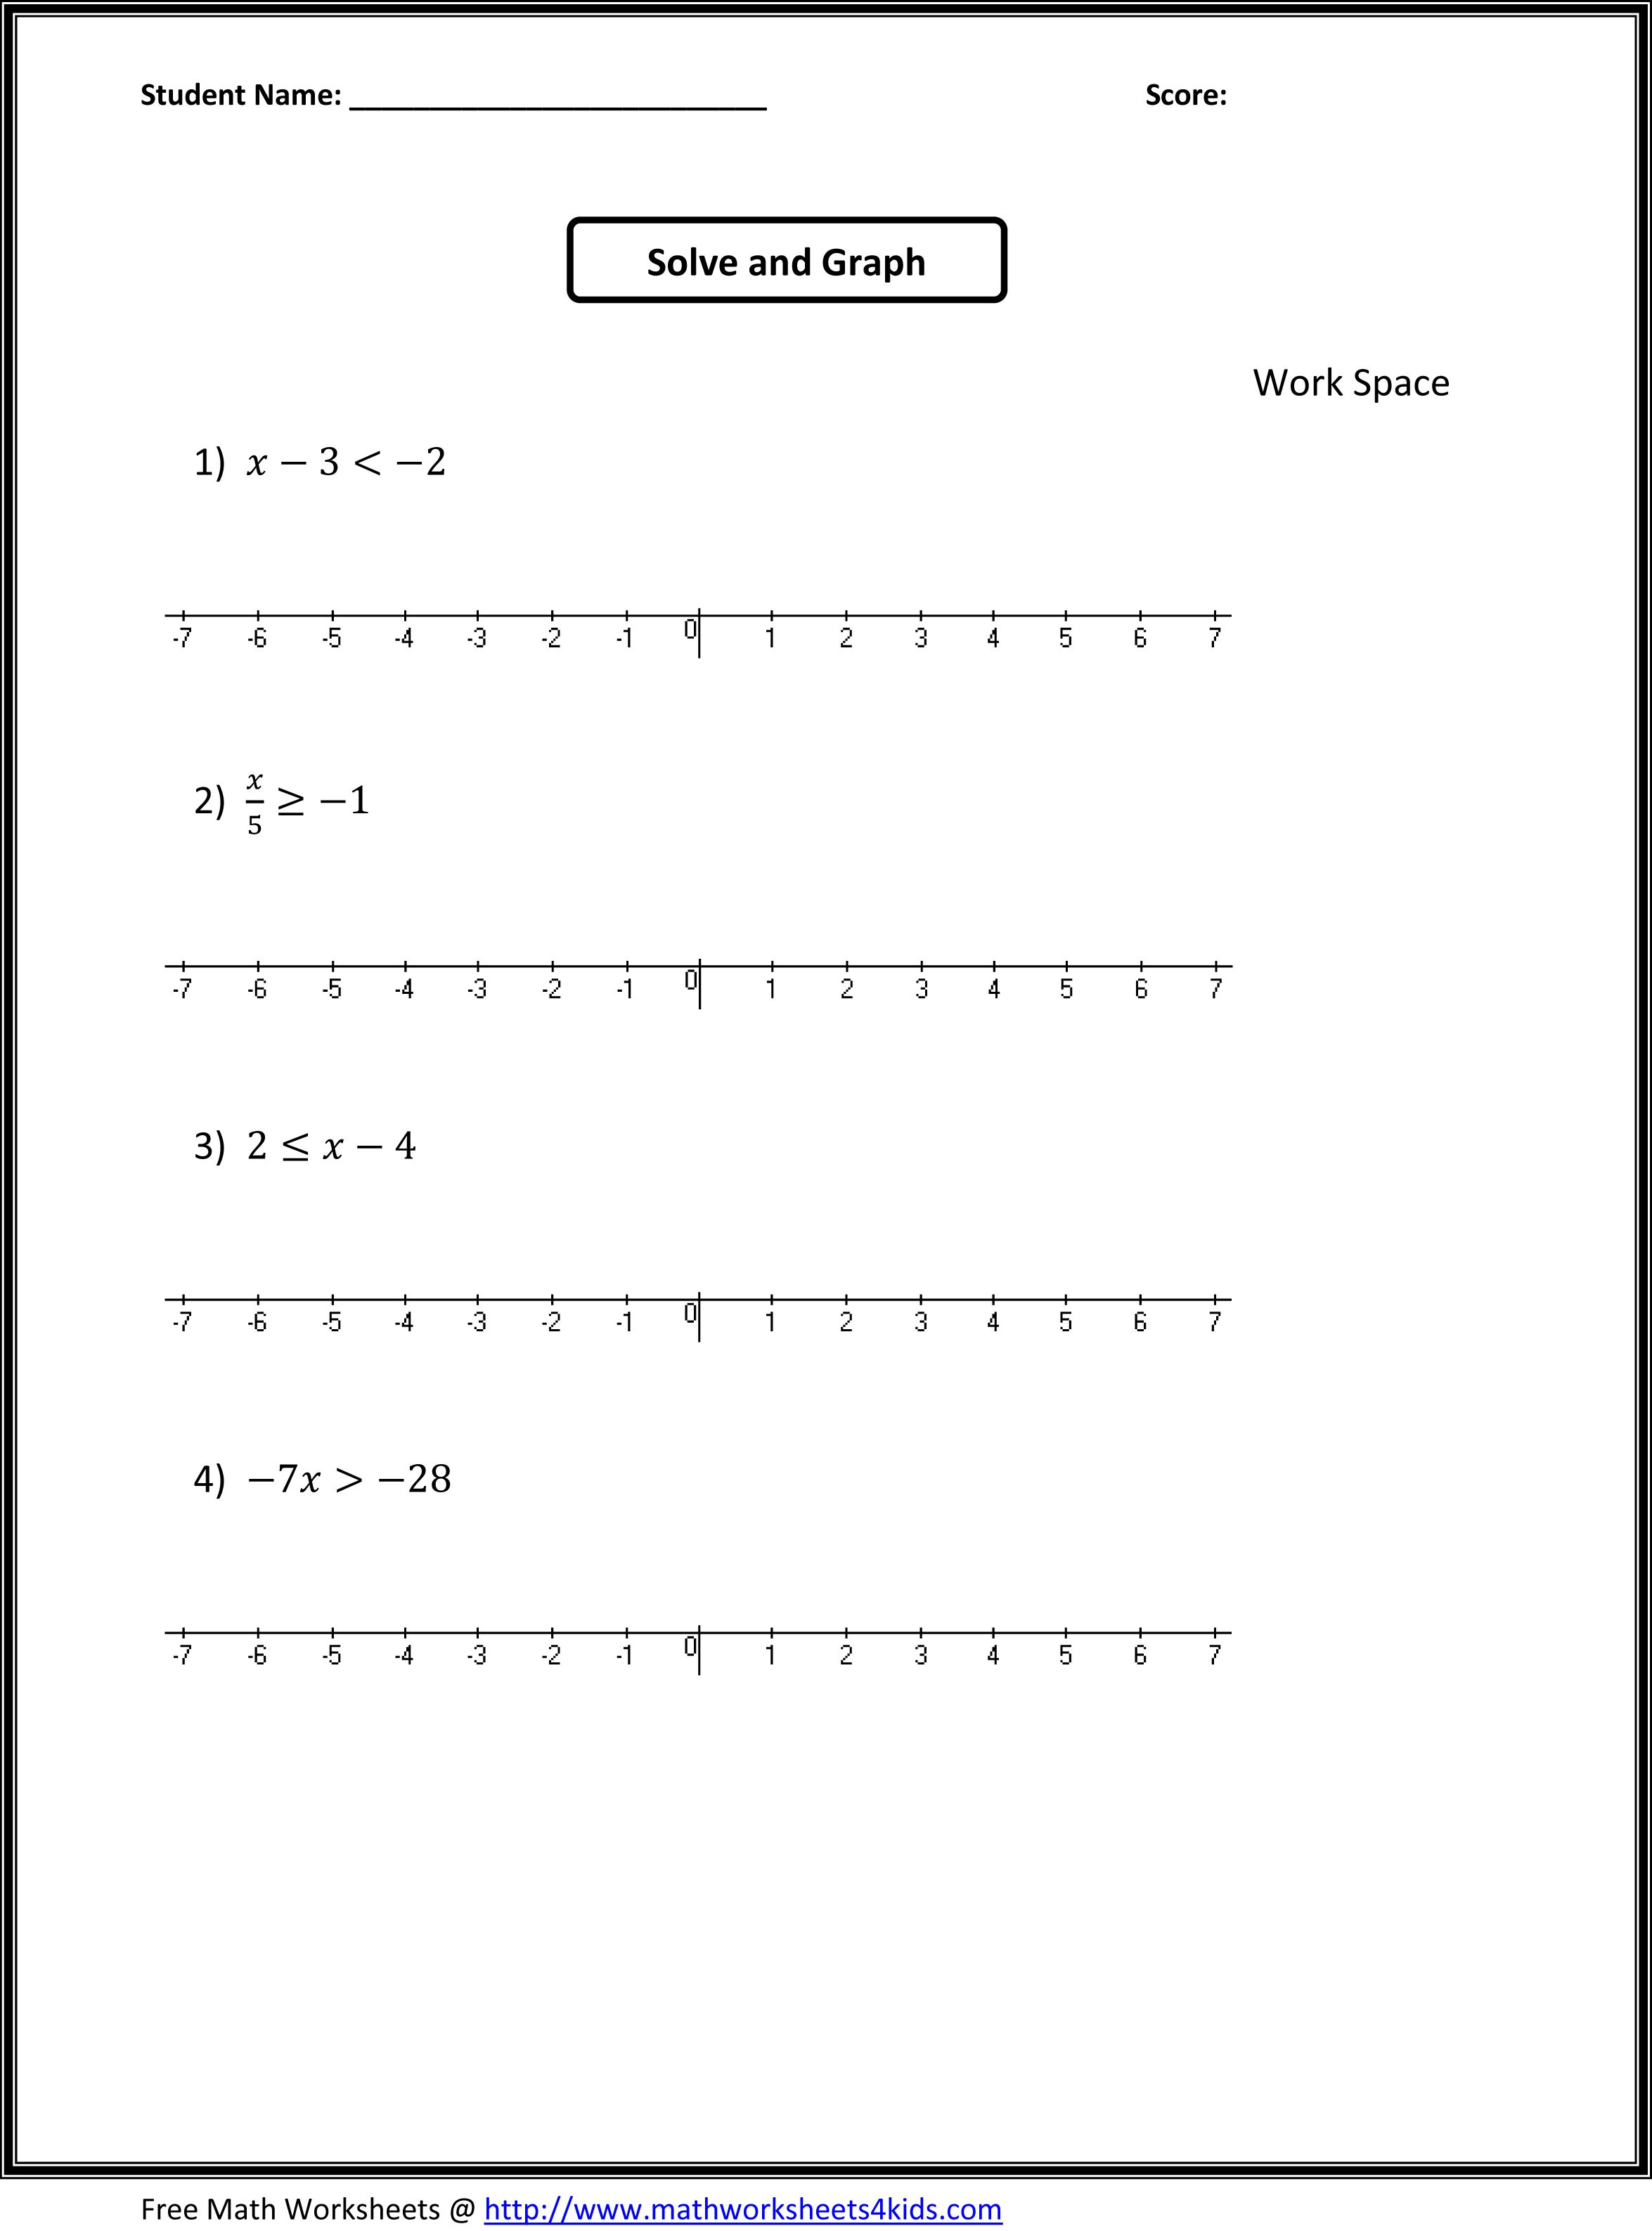 7th grade math worksheets – 7th Grade Math Printable Worksheets